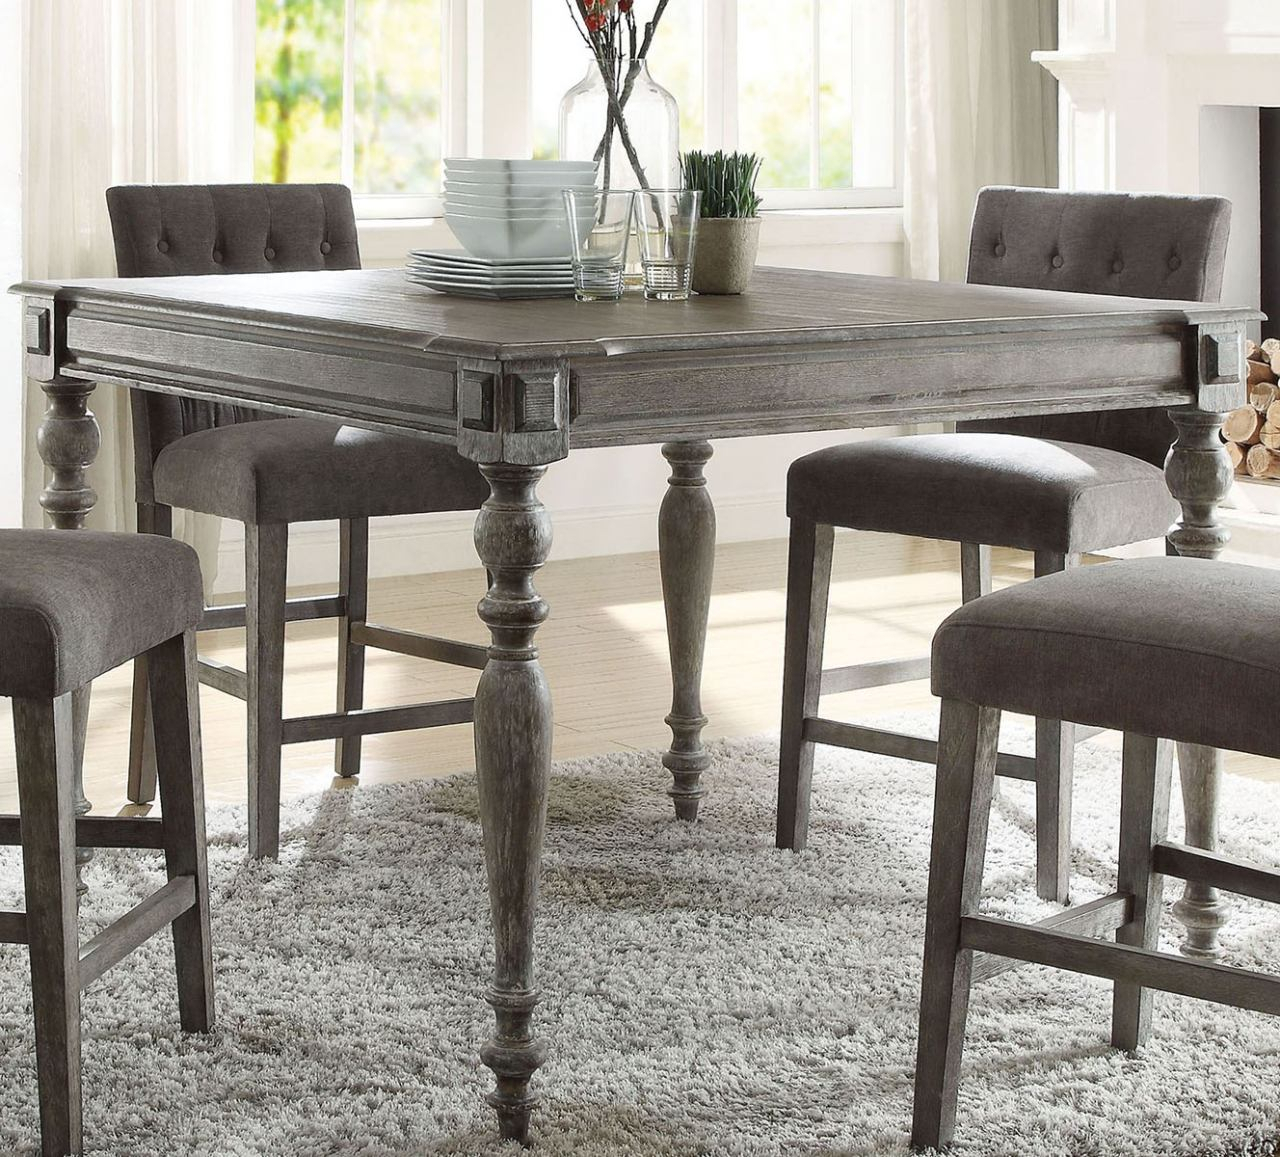 Acme Furniture Godeleine Square Counter Height Table In Regarding Most Recently Released Hearne Counter Height Dining Tables (View 14 of 15)